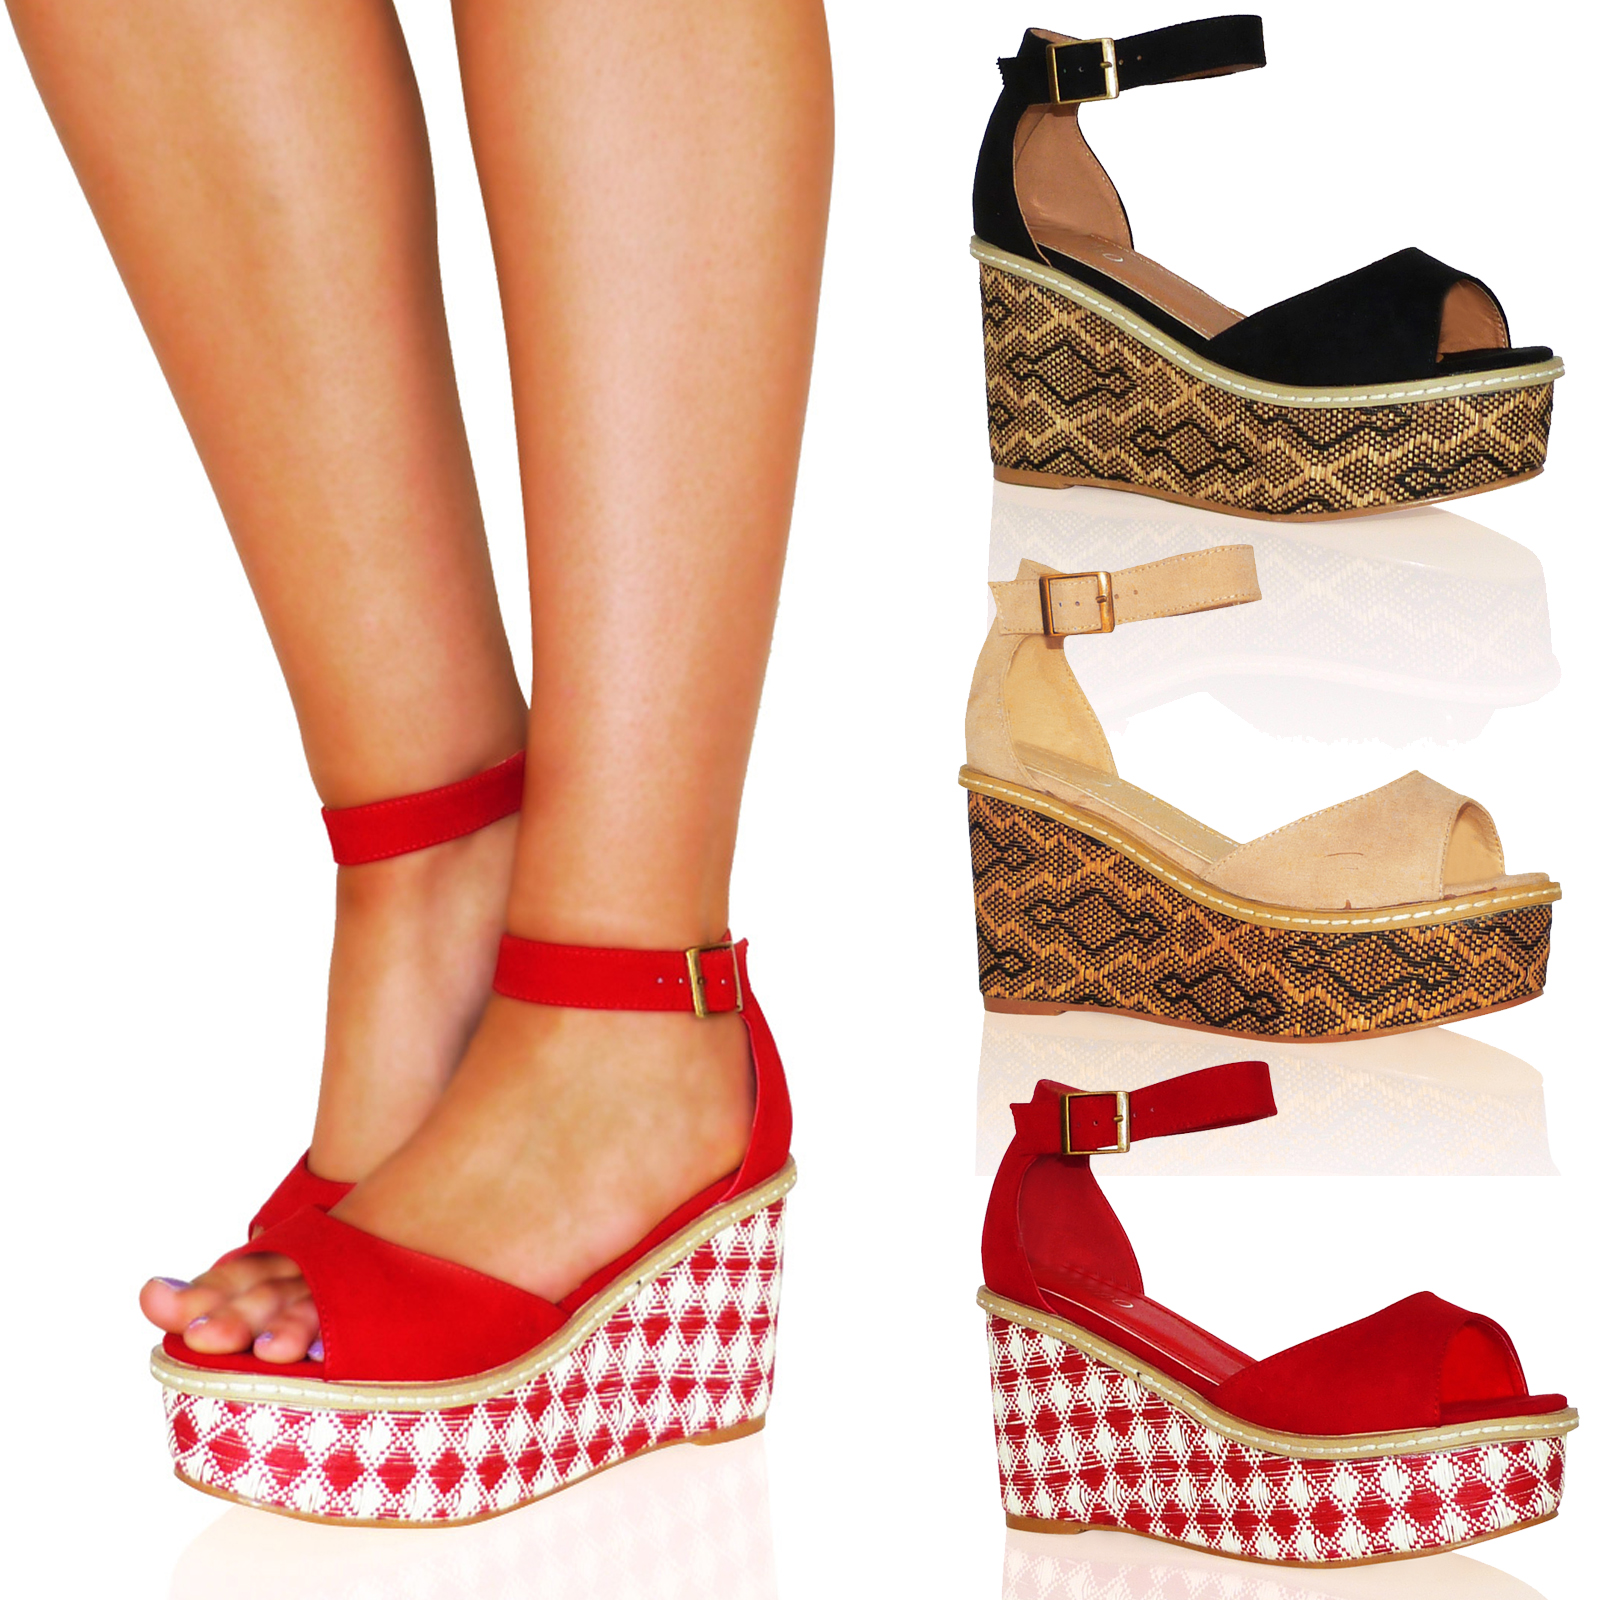 D9X WOMENS SANDALS LADIES SHOES PLATFORMS WEDGES FLATFORMS SUMMER BUCKLE NEW